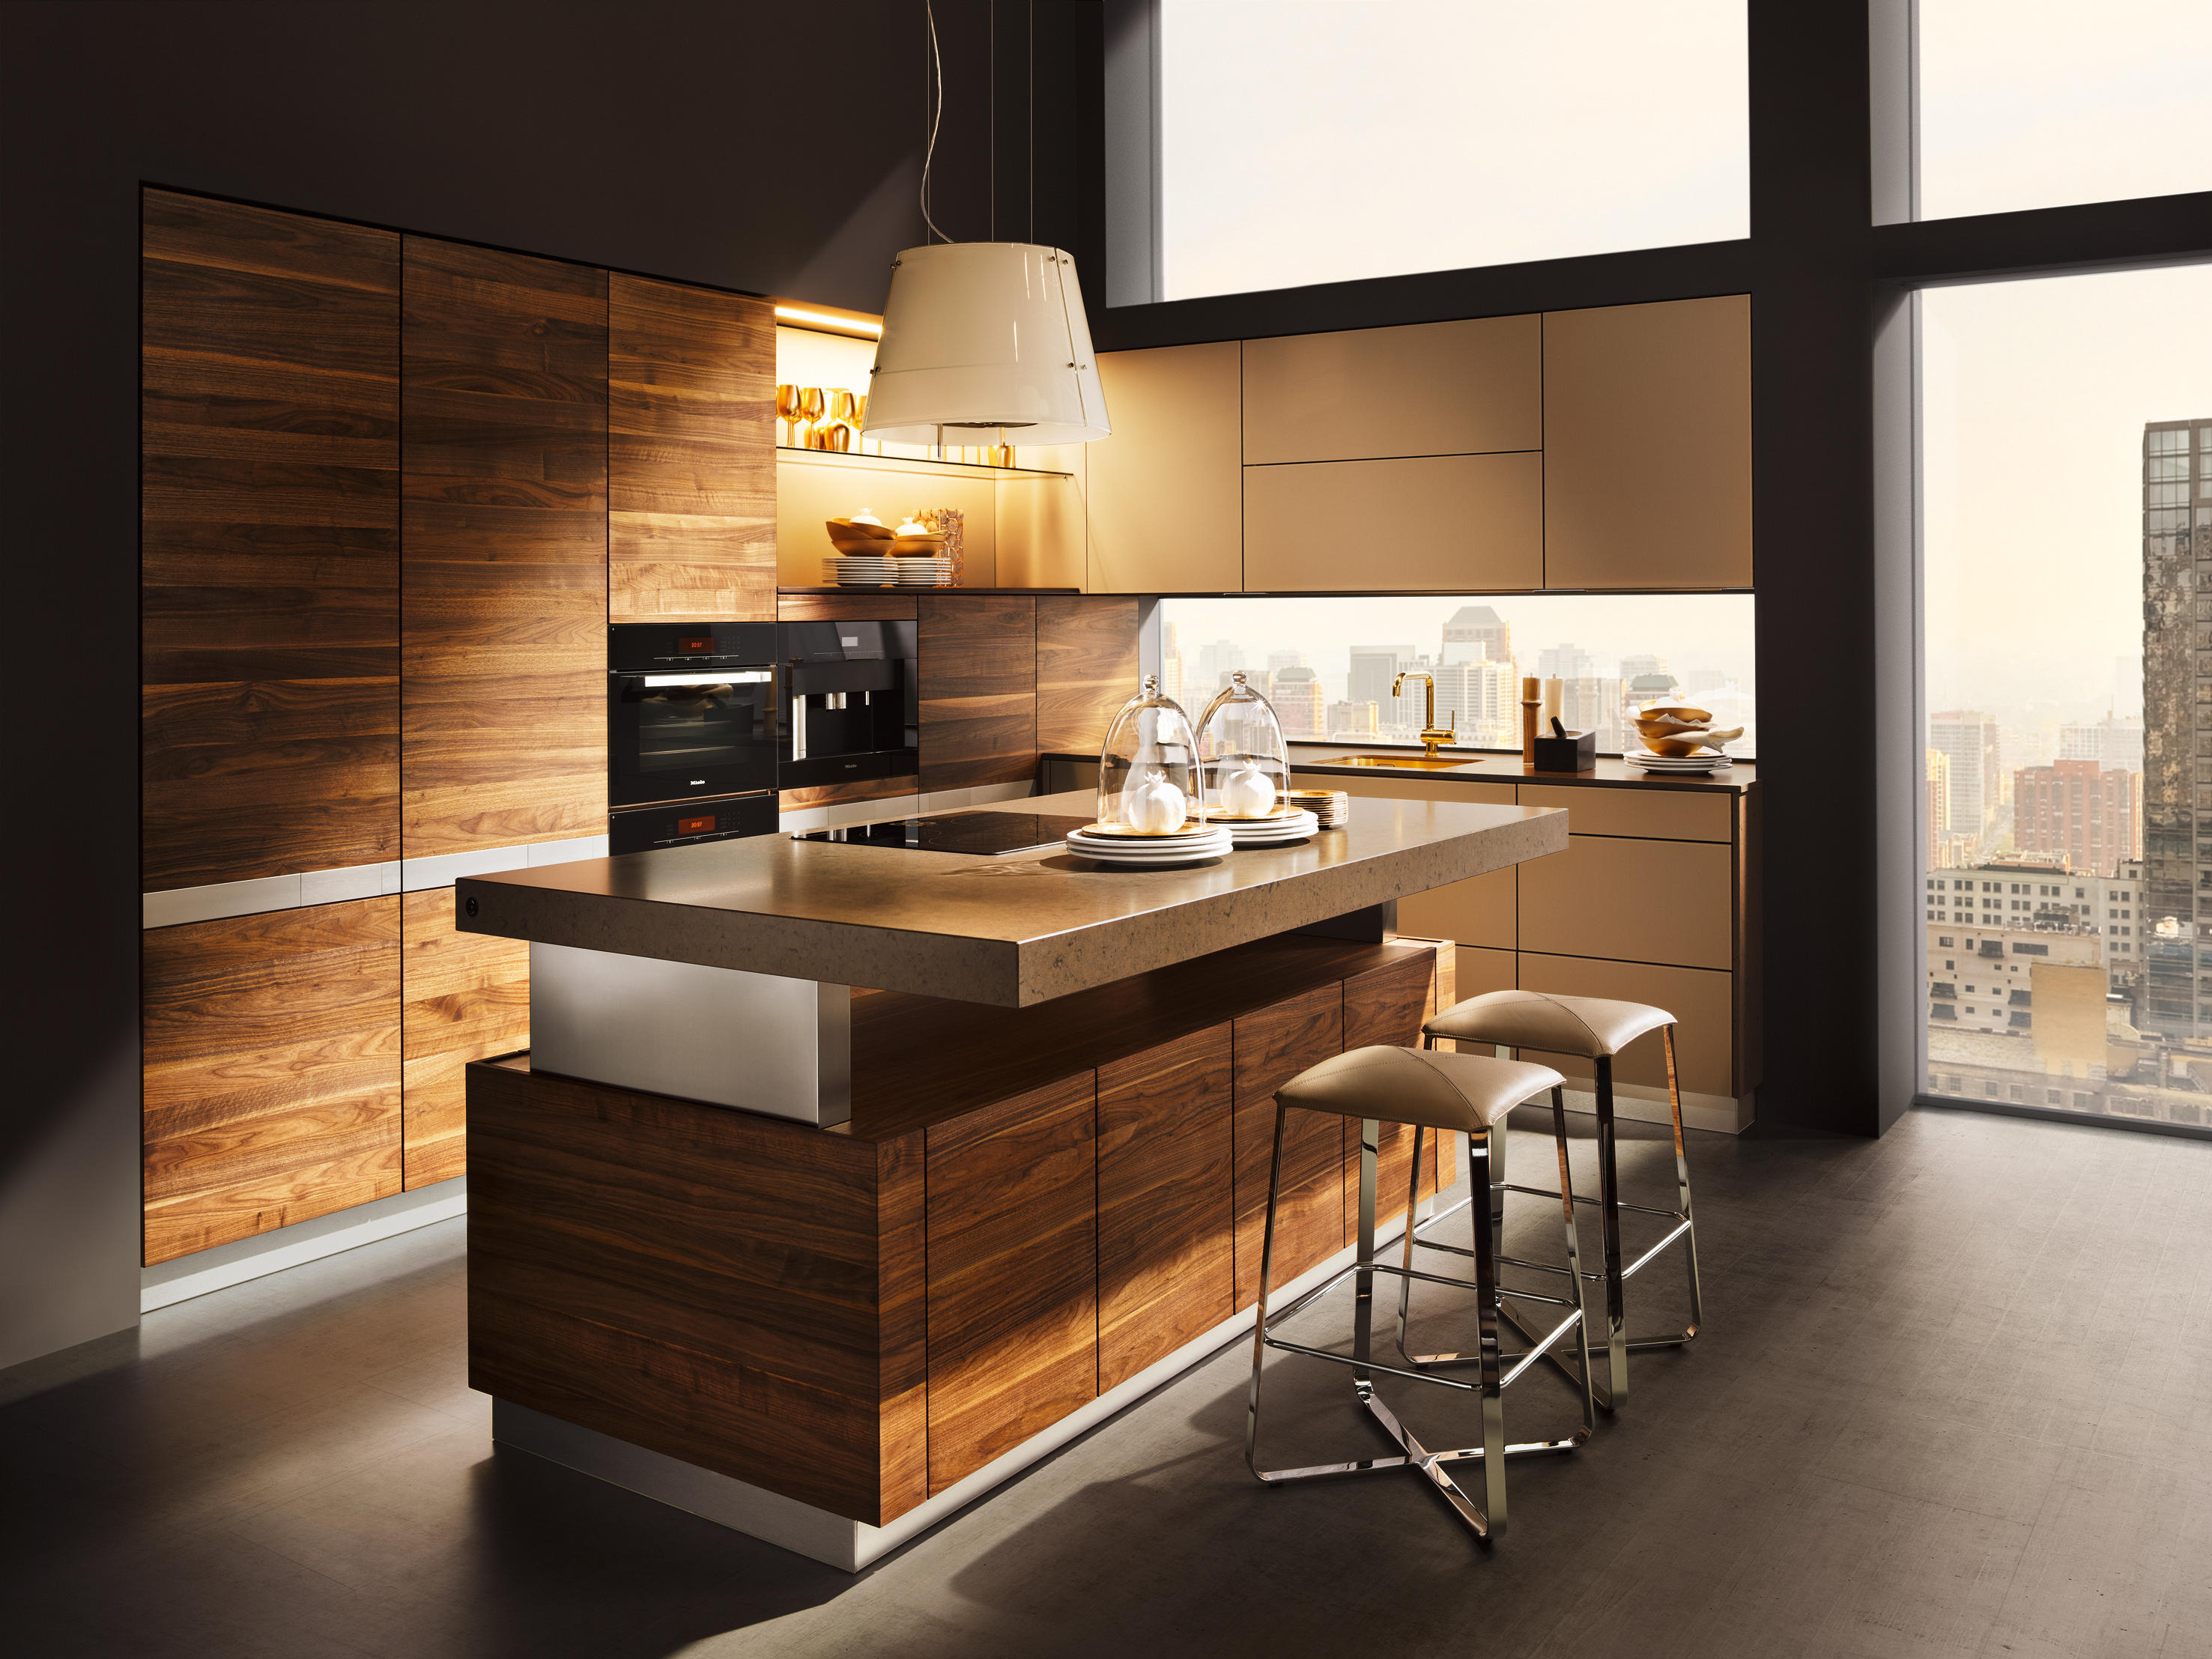 Küche team 7  K7 COOKING ISLAND - Island kitchens from TEAM 7 | Architonic